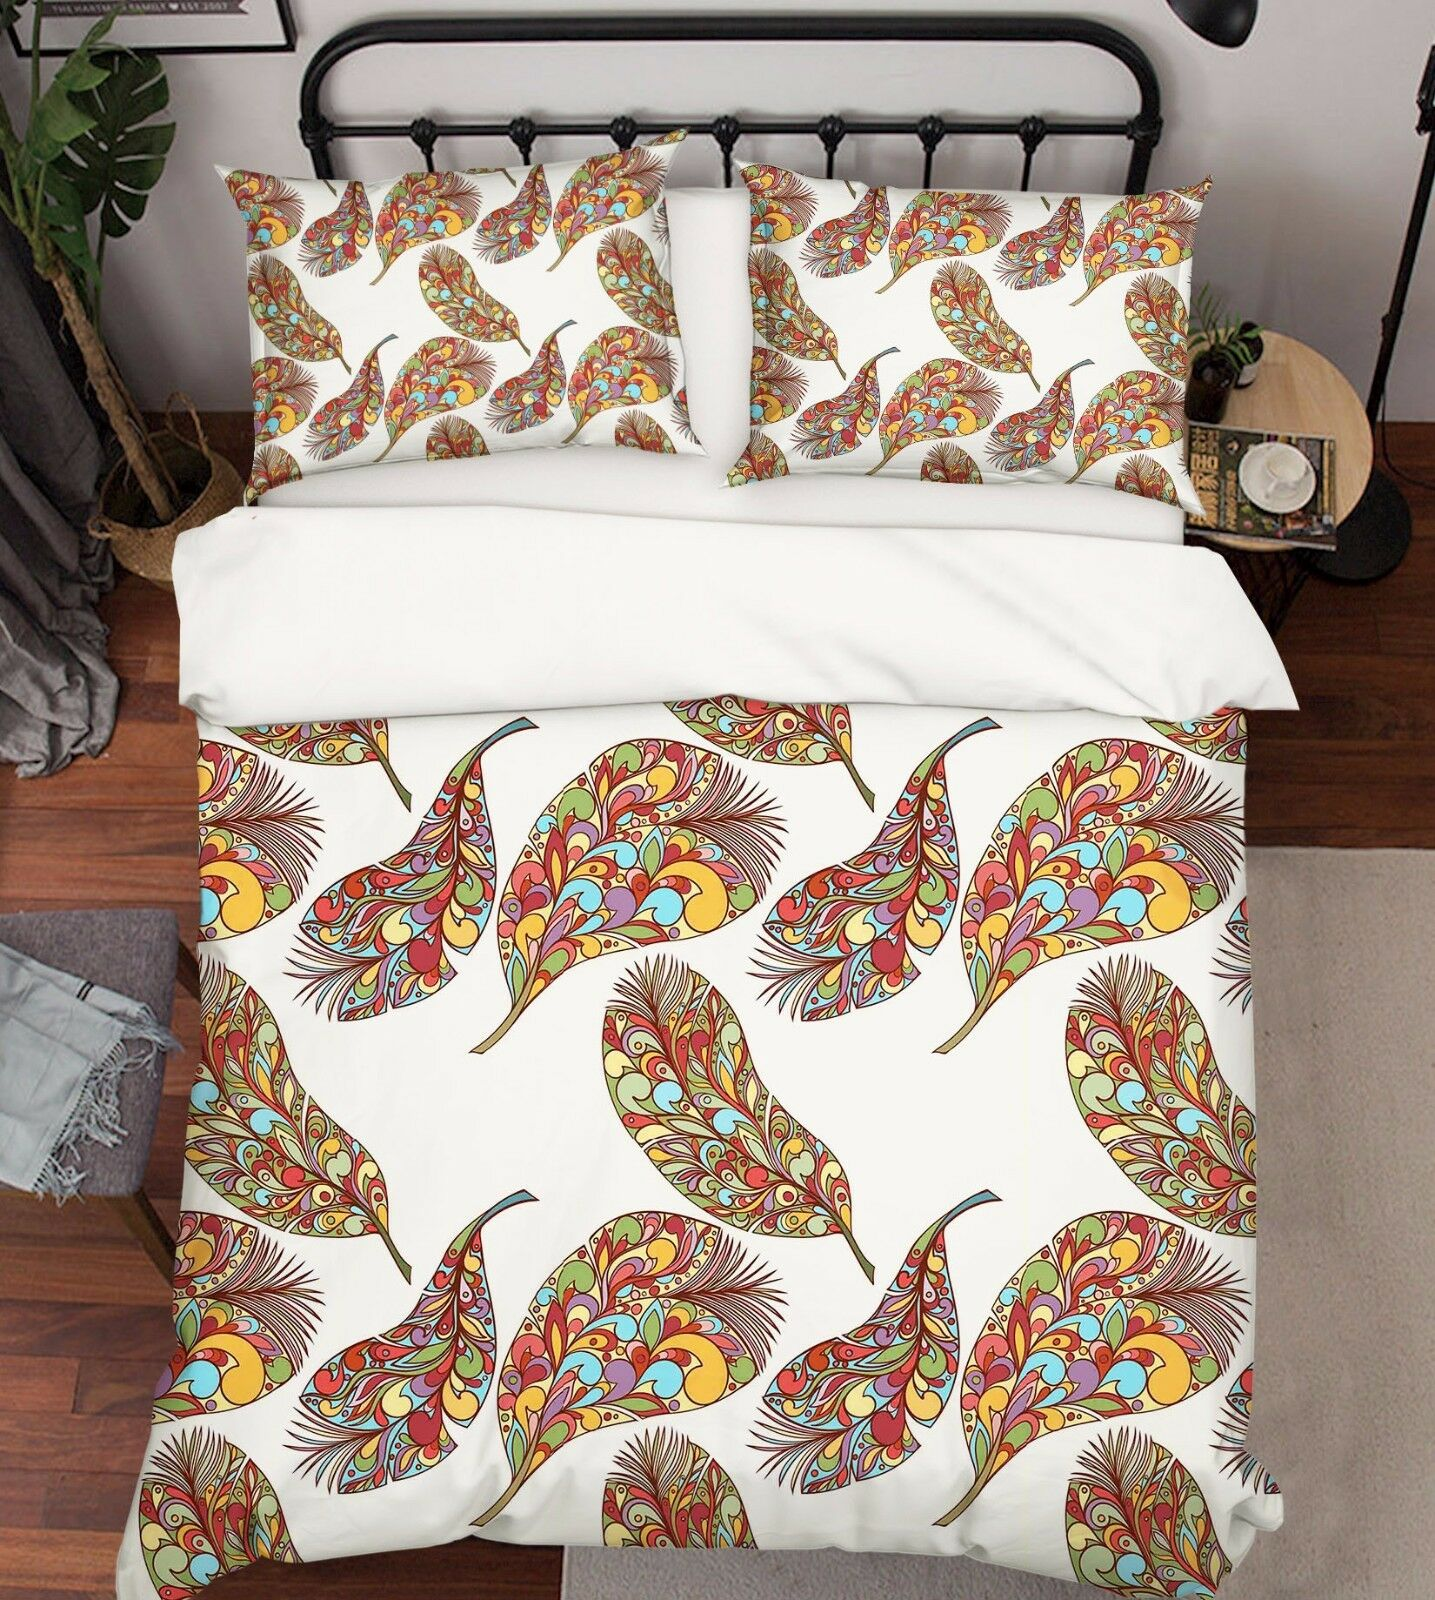 3D Nice Feathers Bed Pillowcases Quilt Duvet Cover Set Single Queen King Size AU